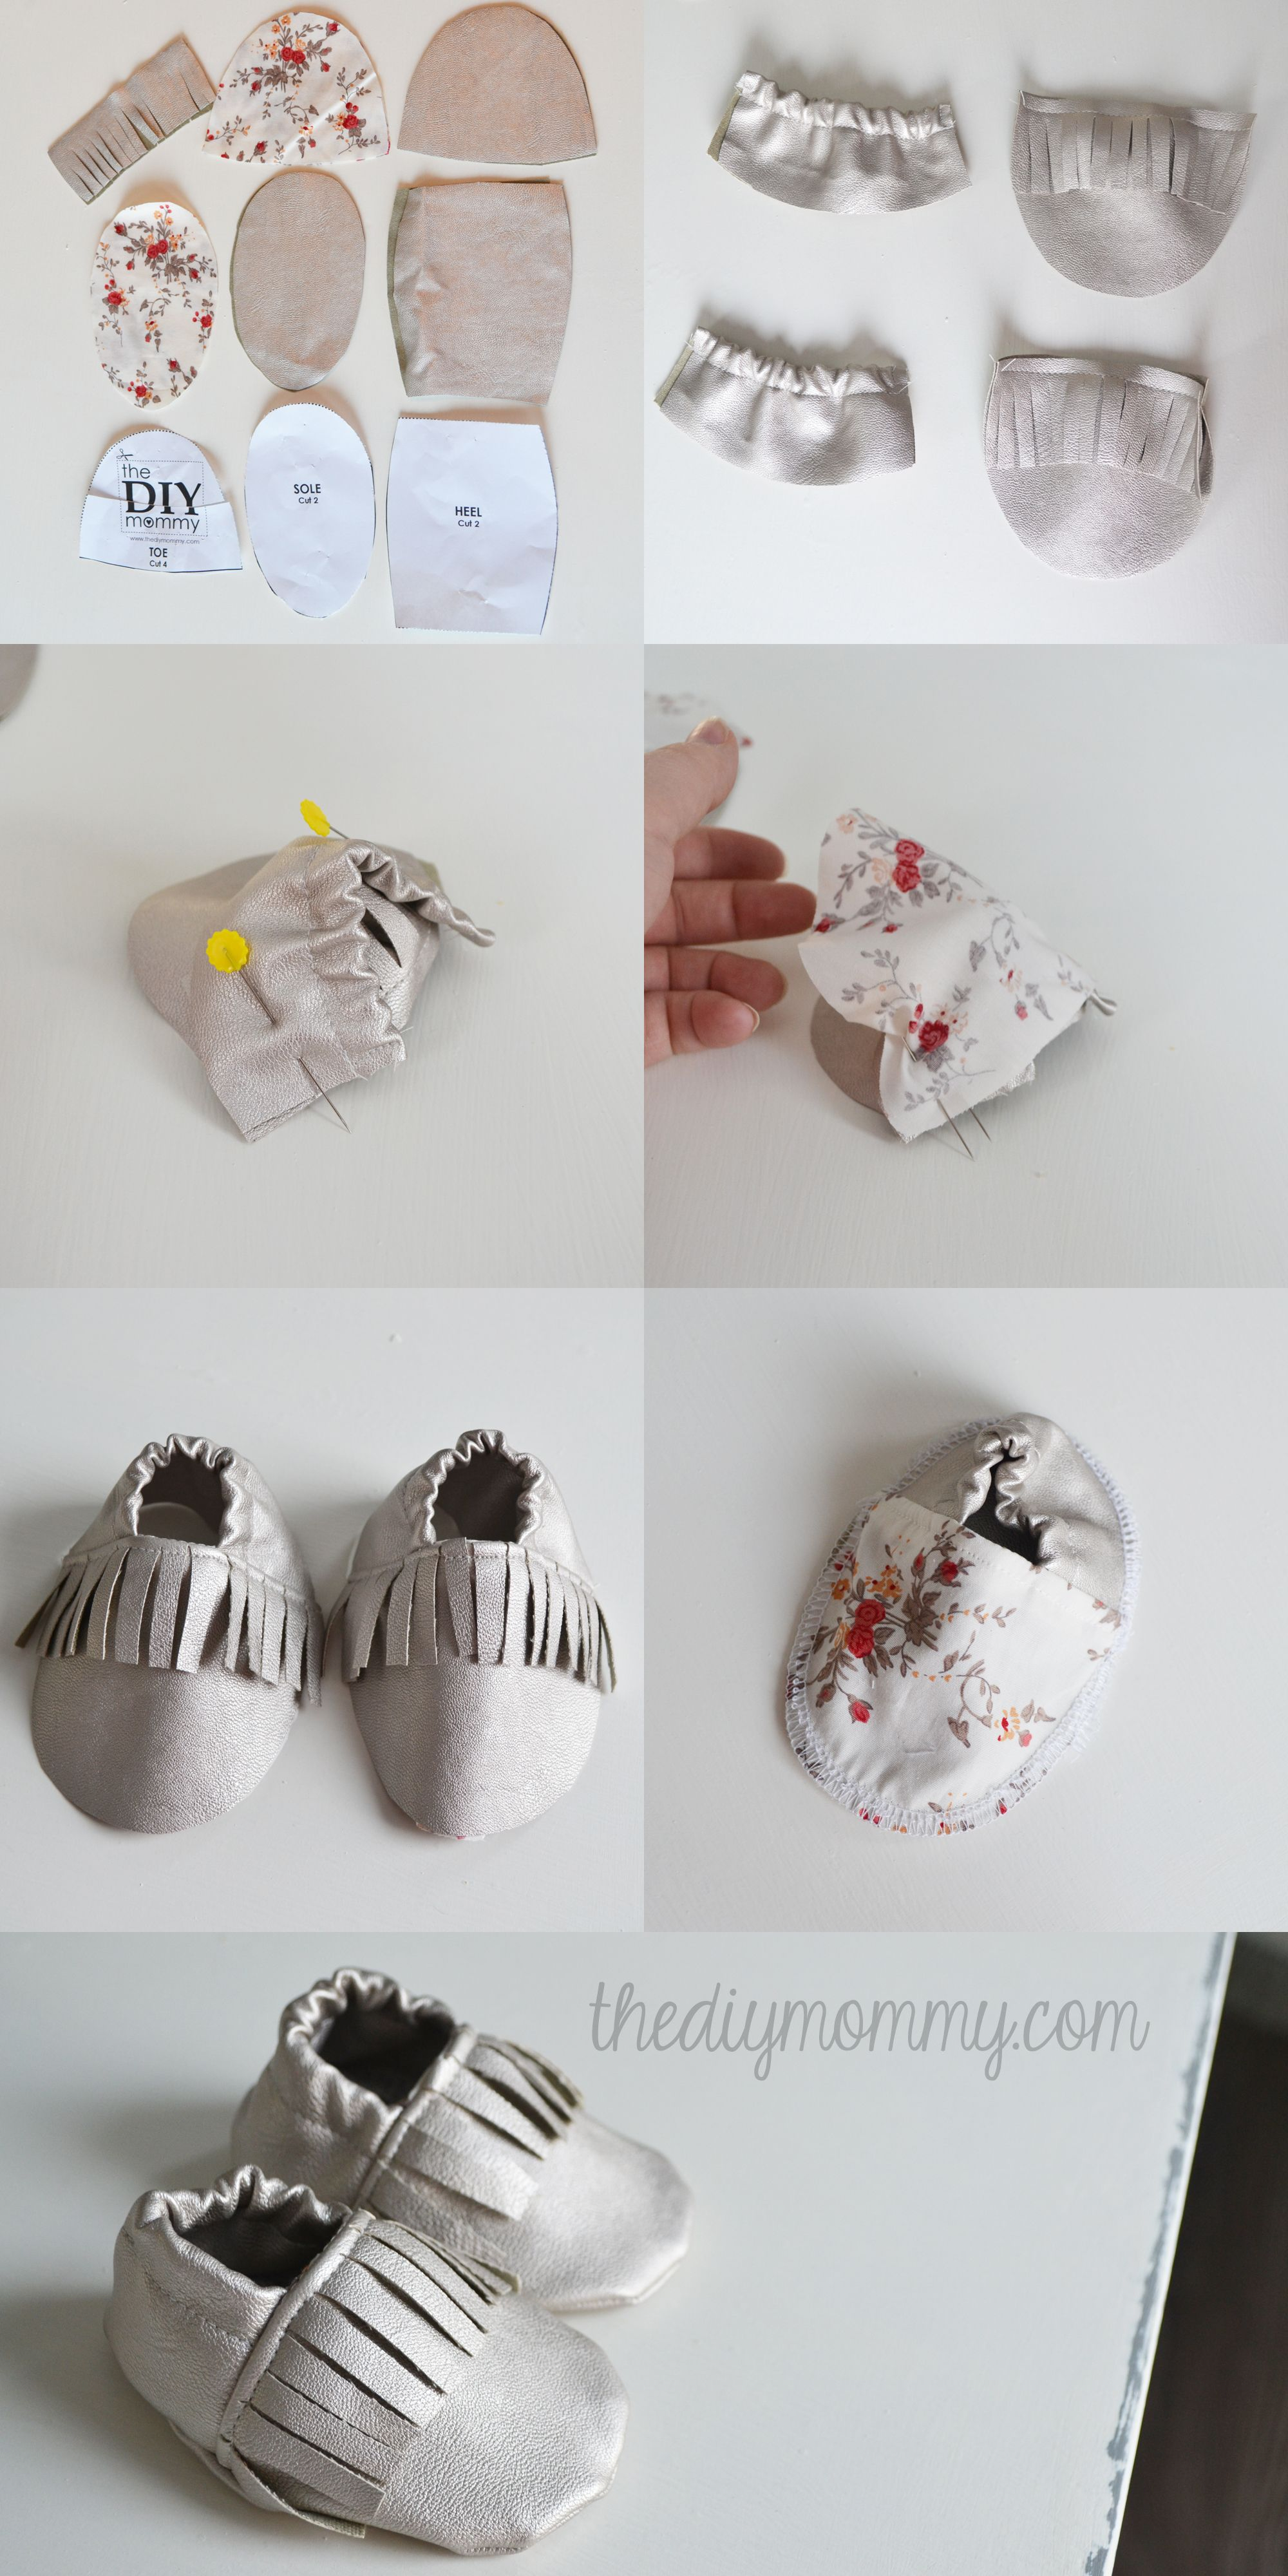 DIY Fringed Leather Baby Booties Moccasins Tutorial | шить ...